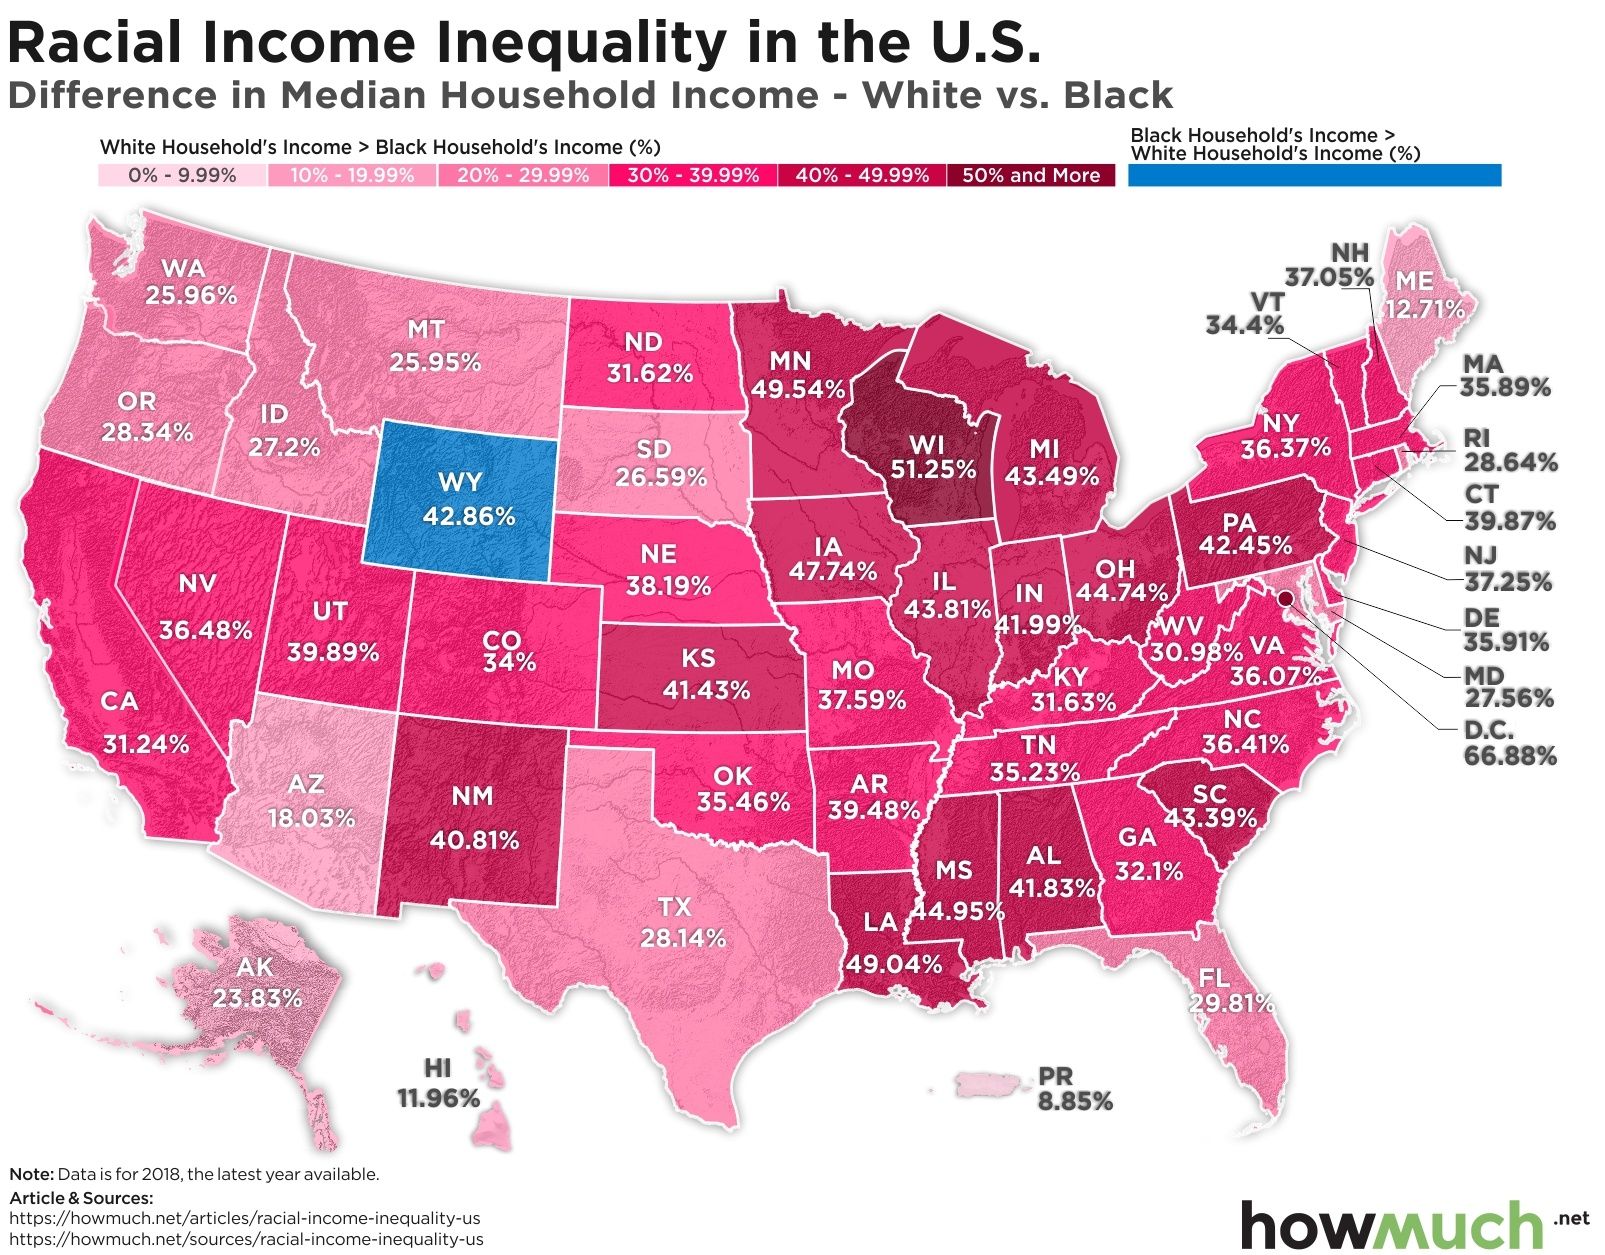 median income difference between black and white households